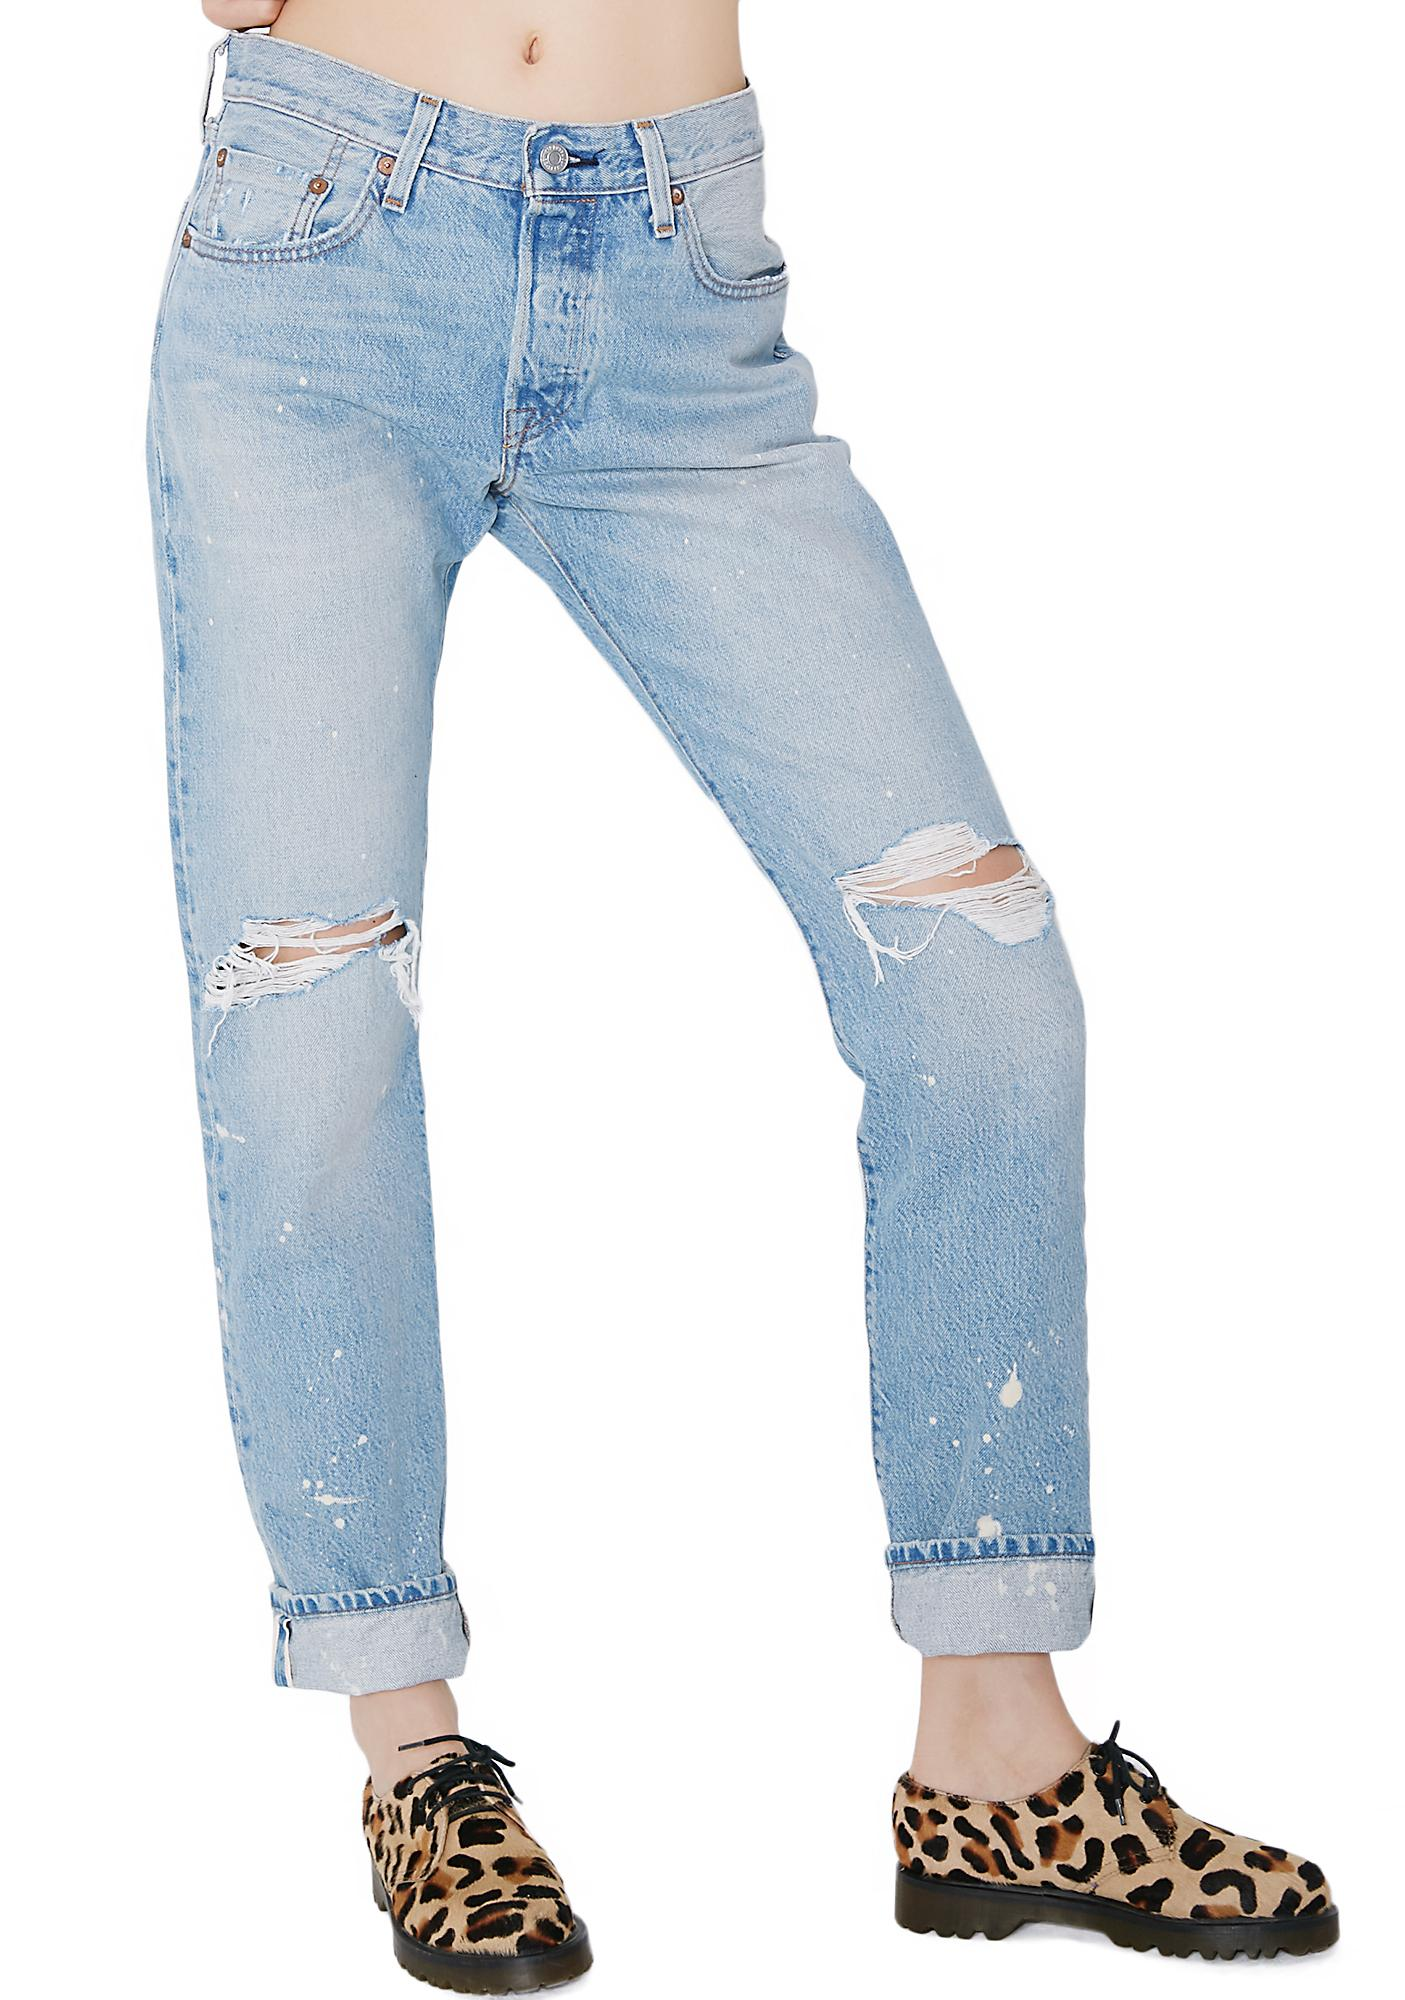 3194b29c37eb Levis 501 Jeans For Women